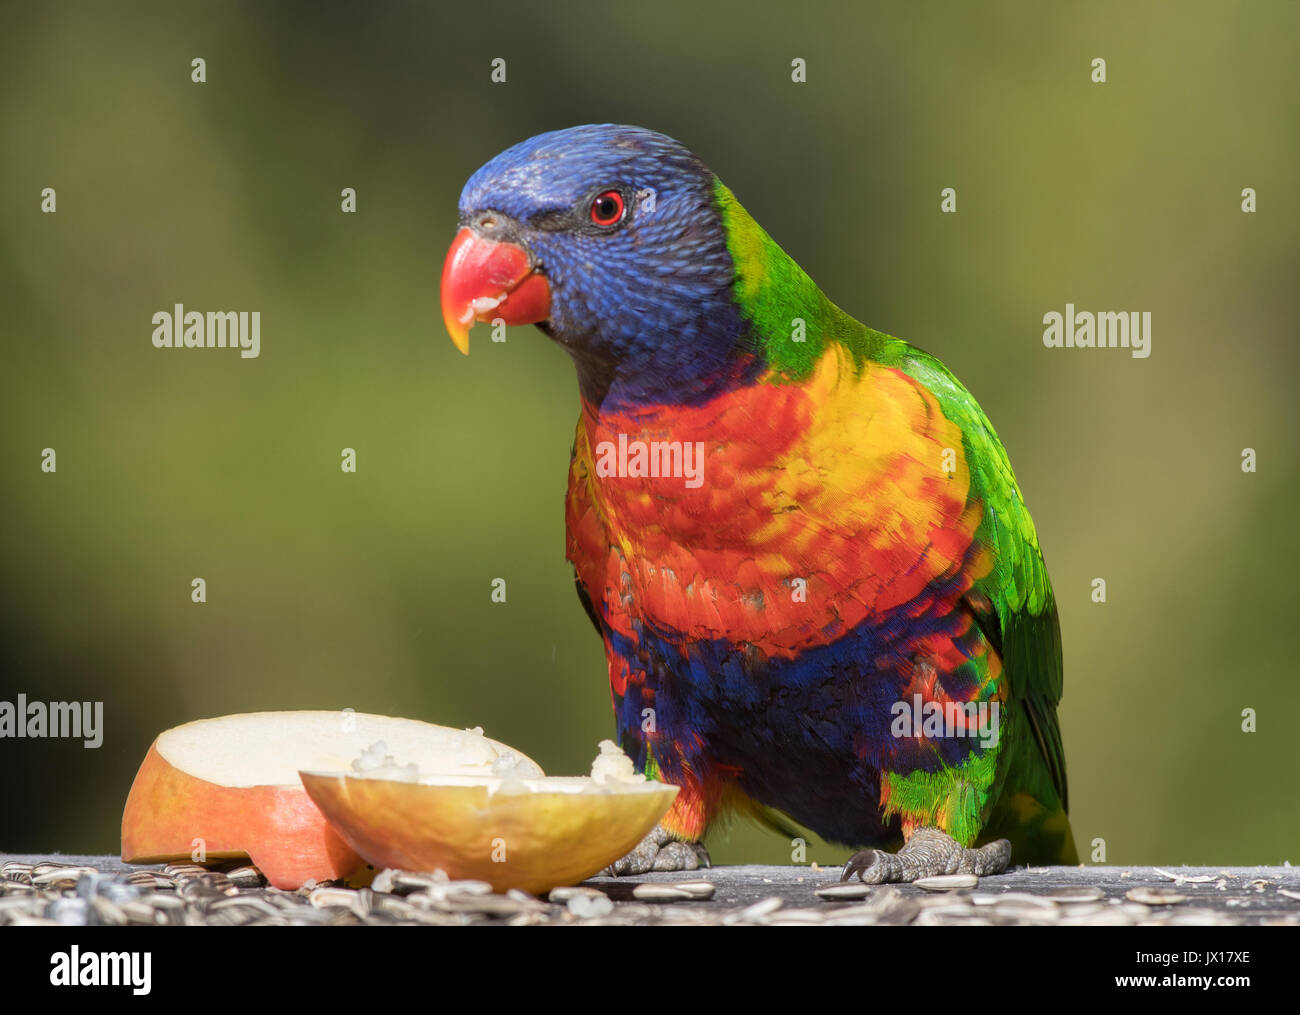 Rainbow Lorikeets can be found across Australia, these vividly coloured birds get very tame and can be found on various Australian product labels. - Stock Image